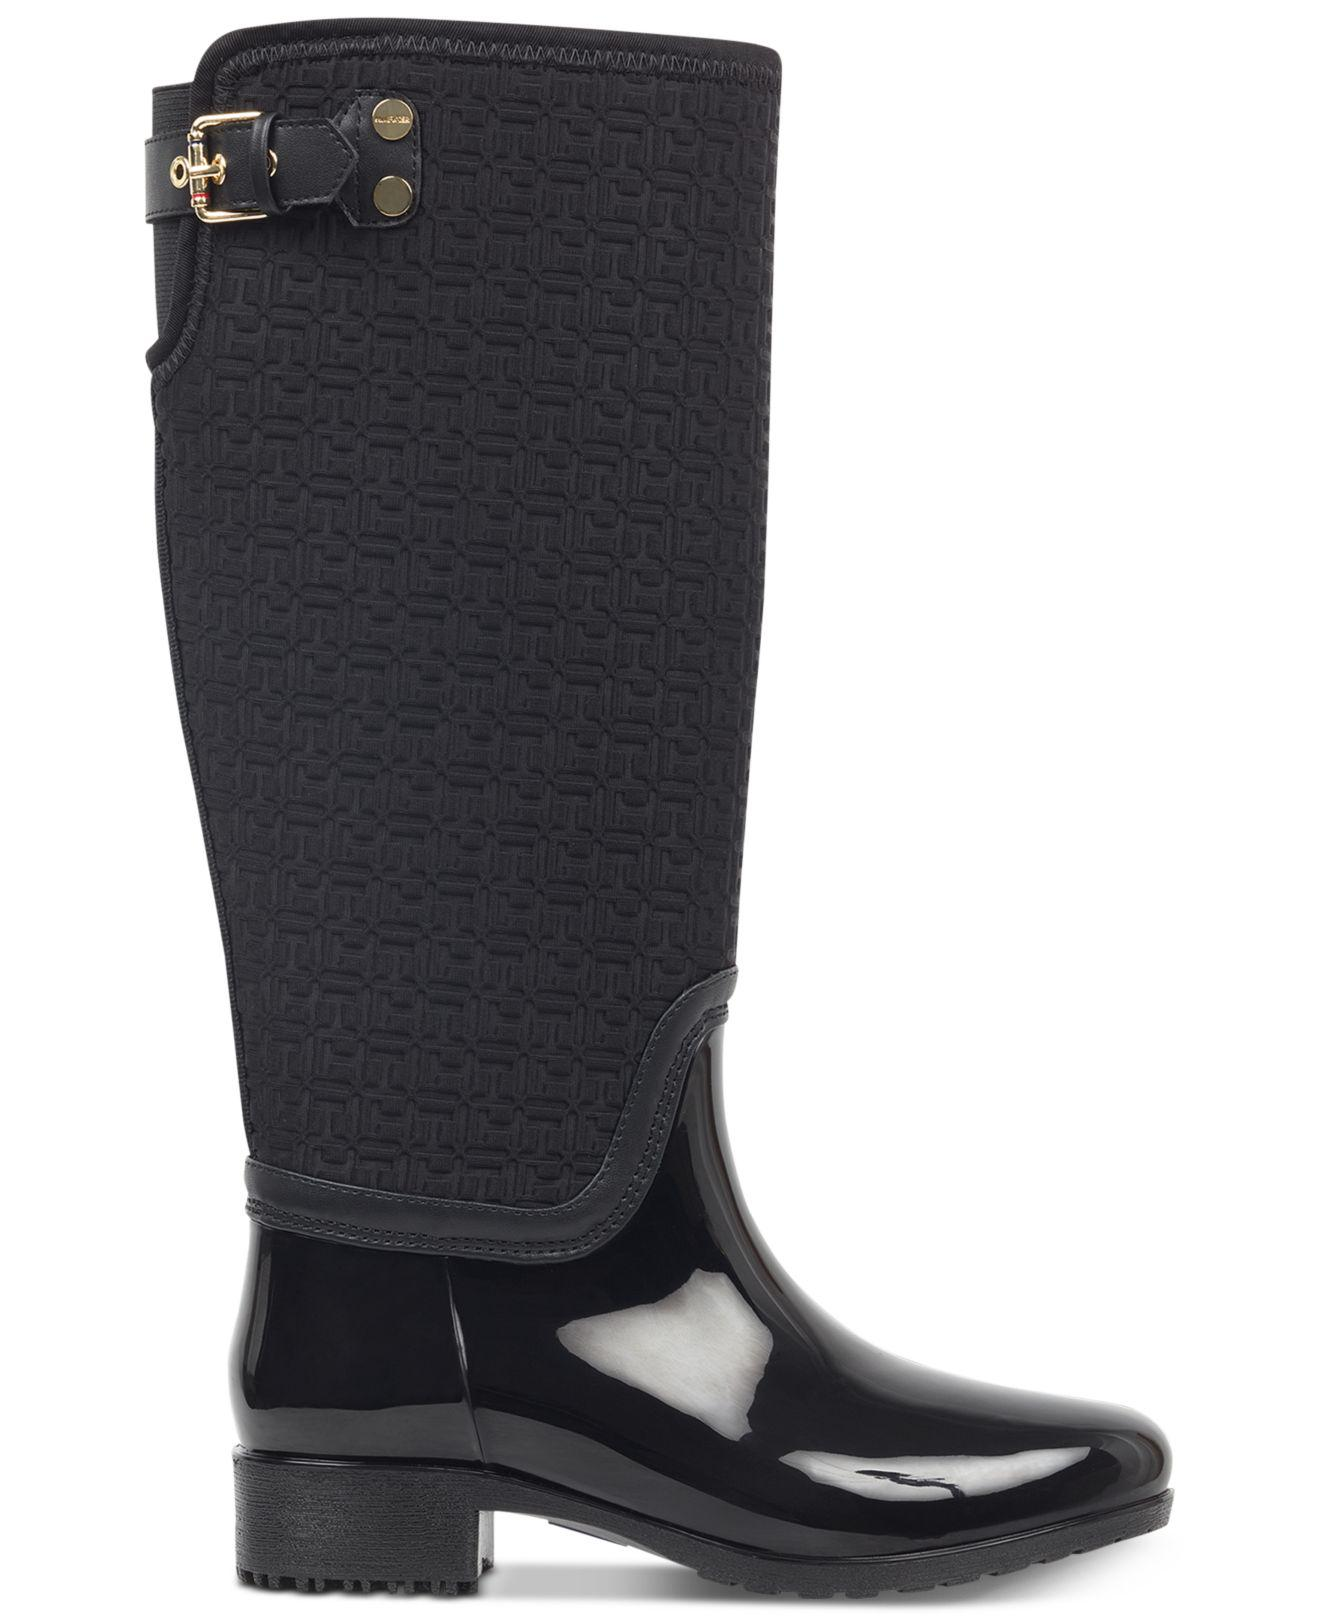 Tommy Hilfiger Rubber Fhibe Rain Boots In Black - Lyst-7253